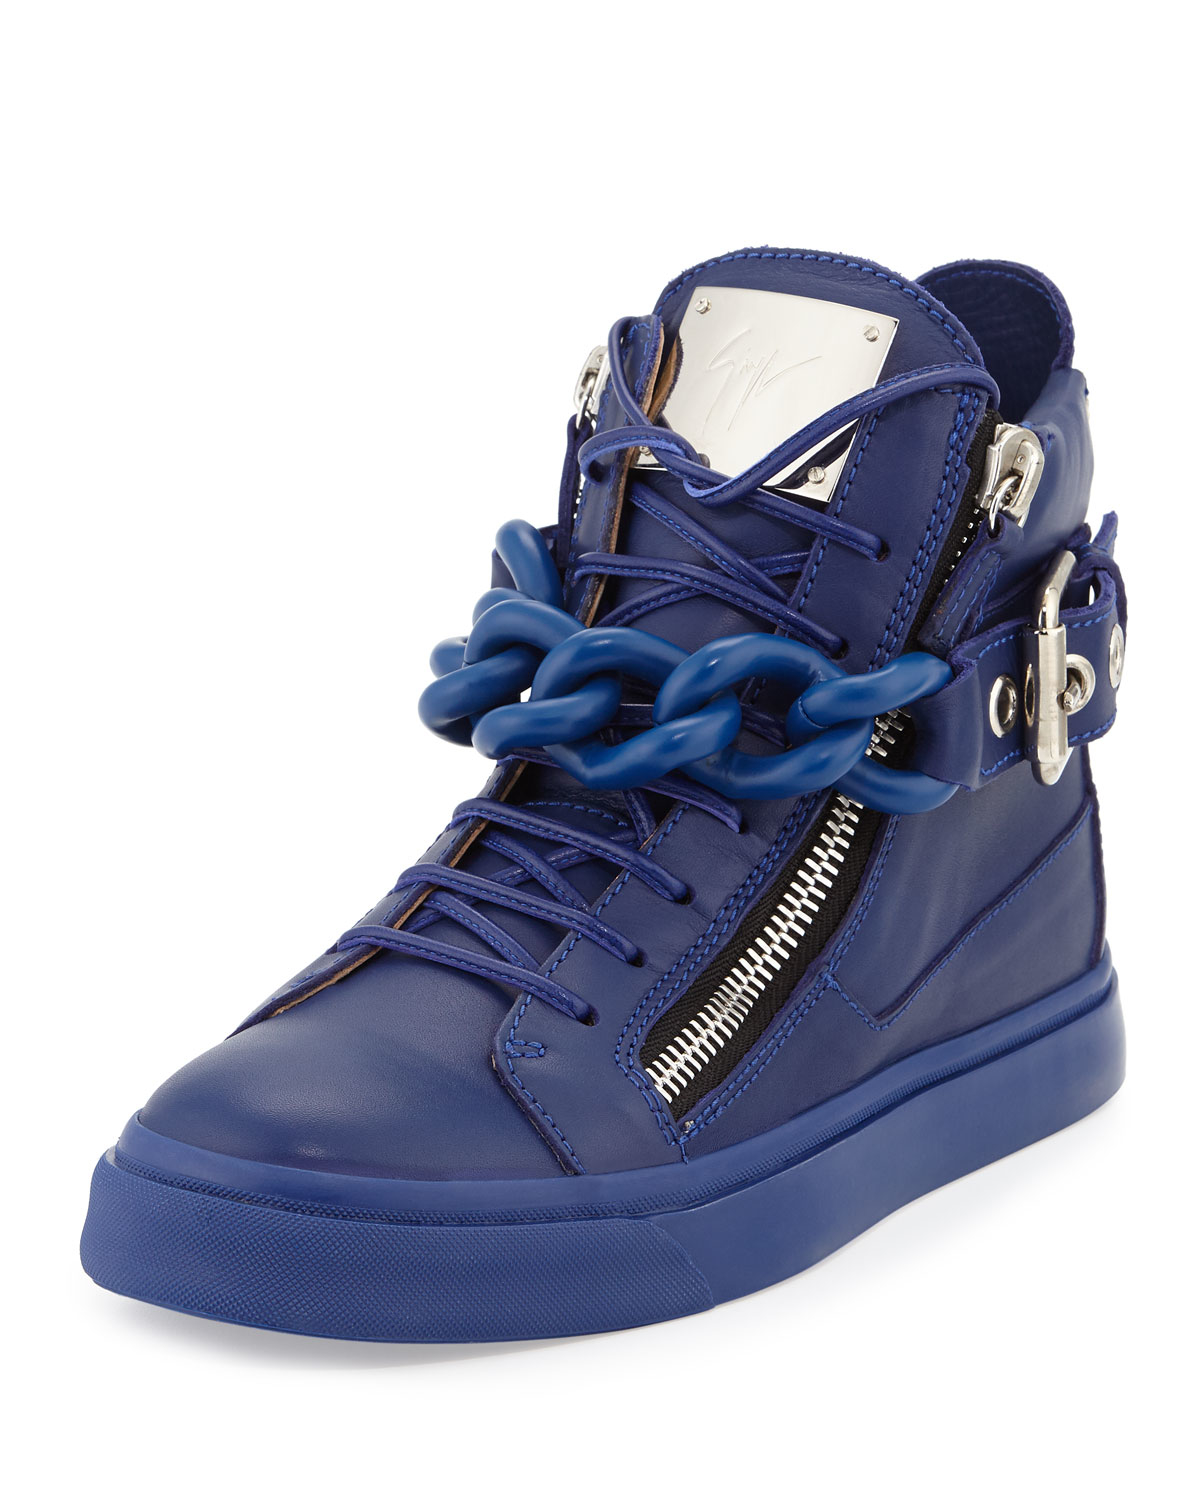 Giuseppe zanotti Chain Leather High-Top Sneakers in Blue ...